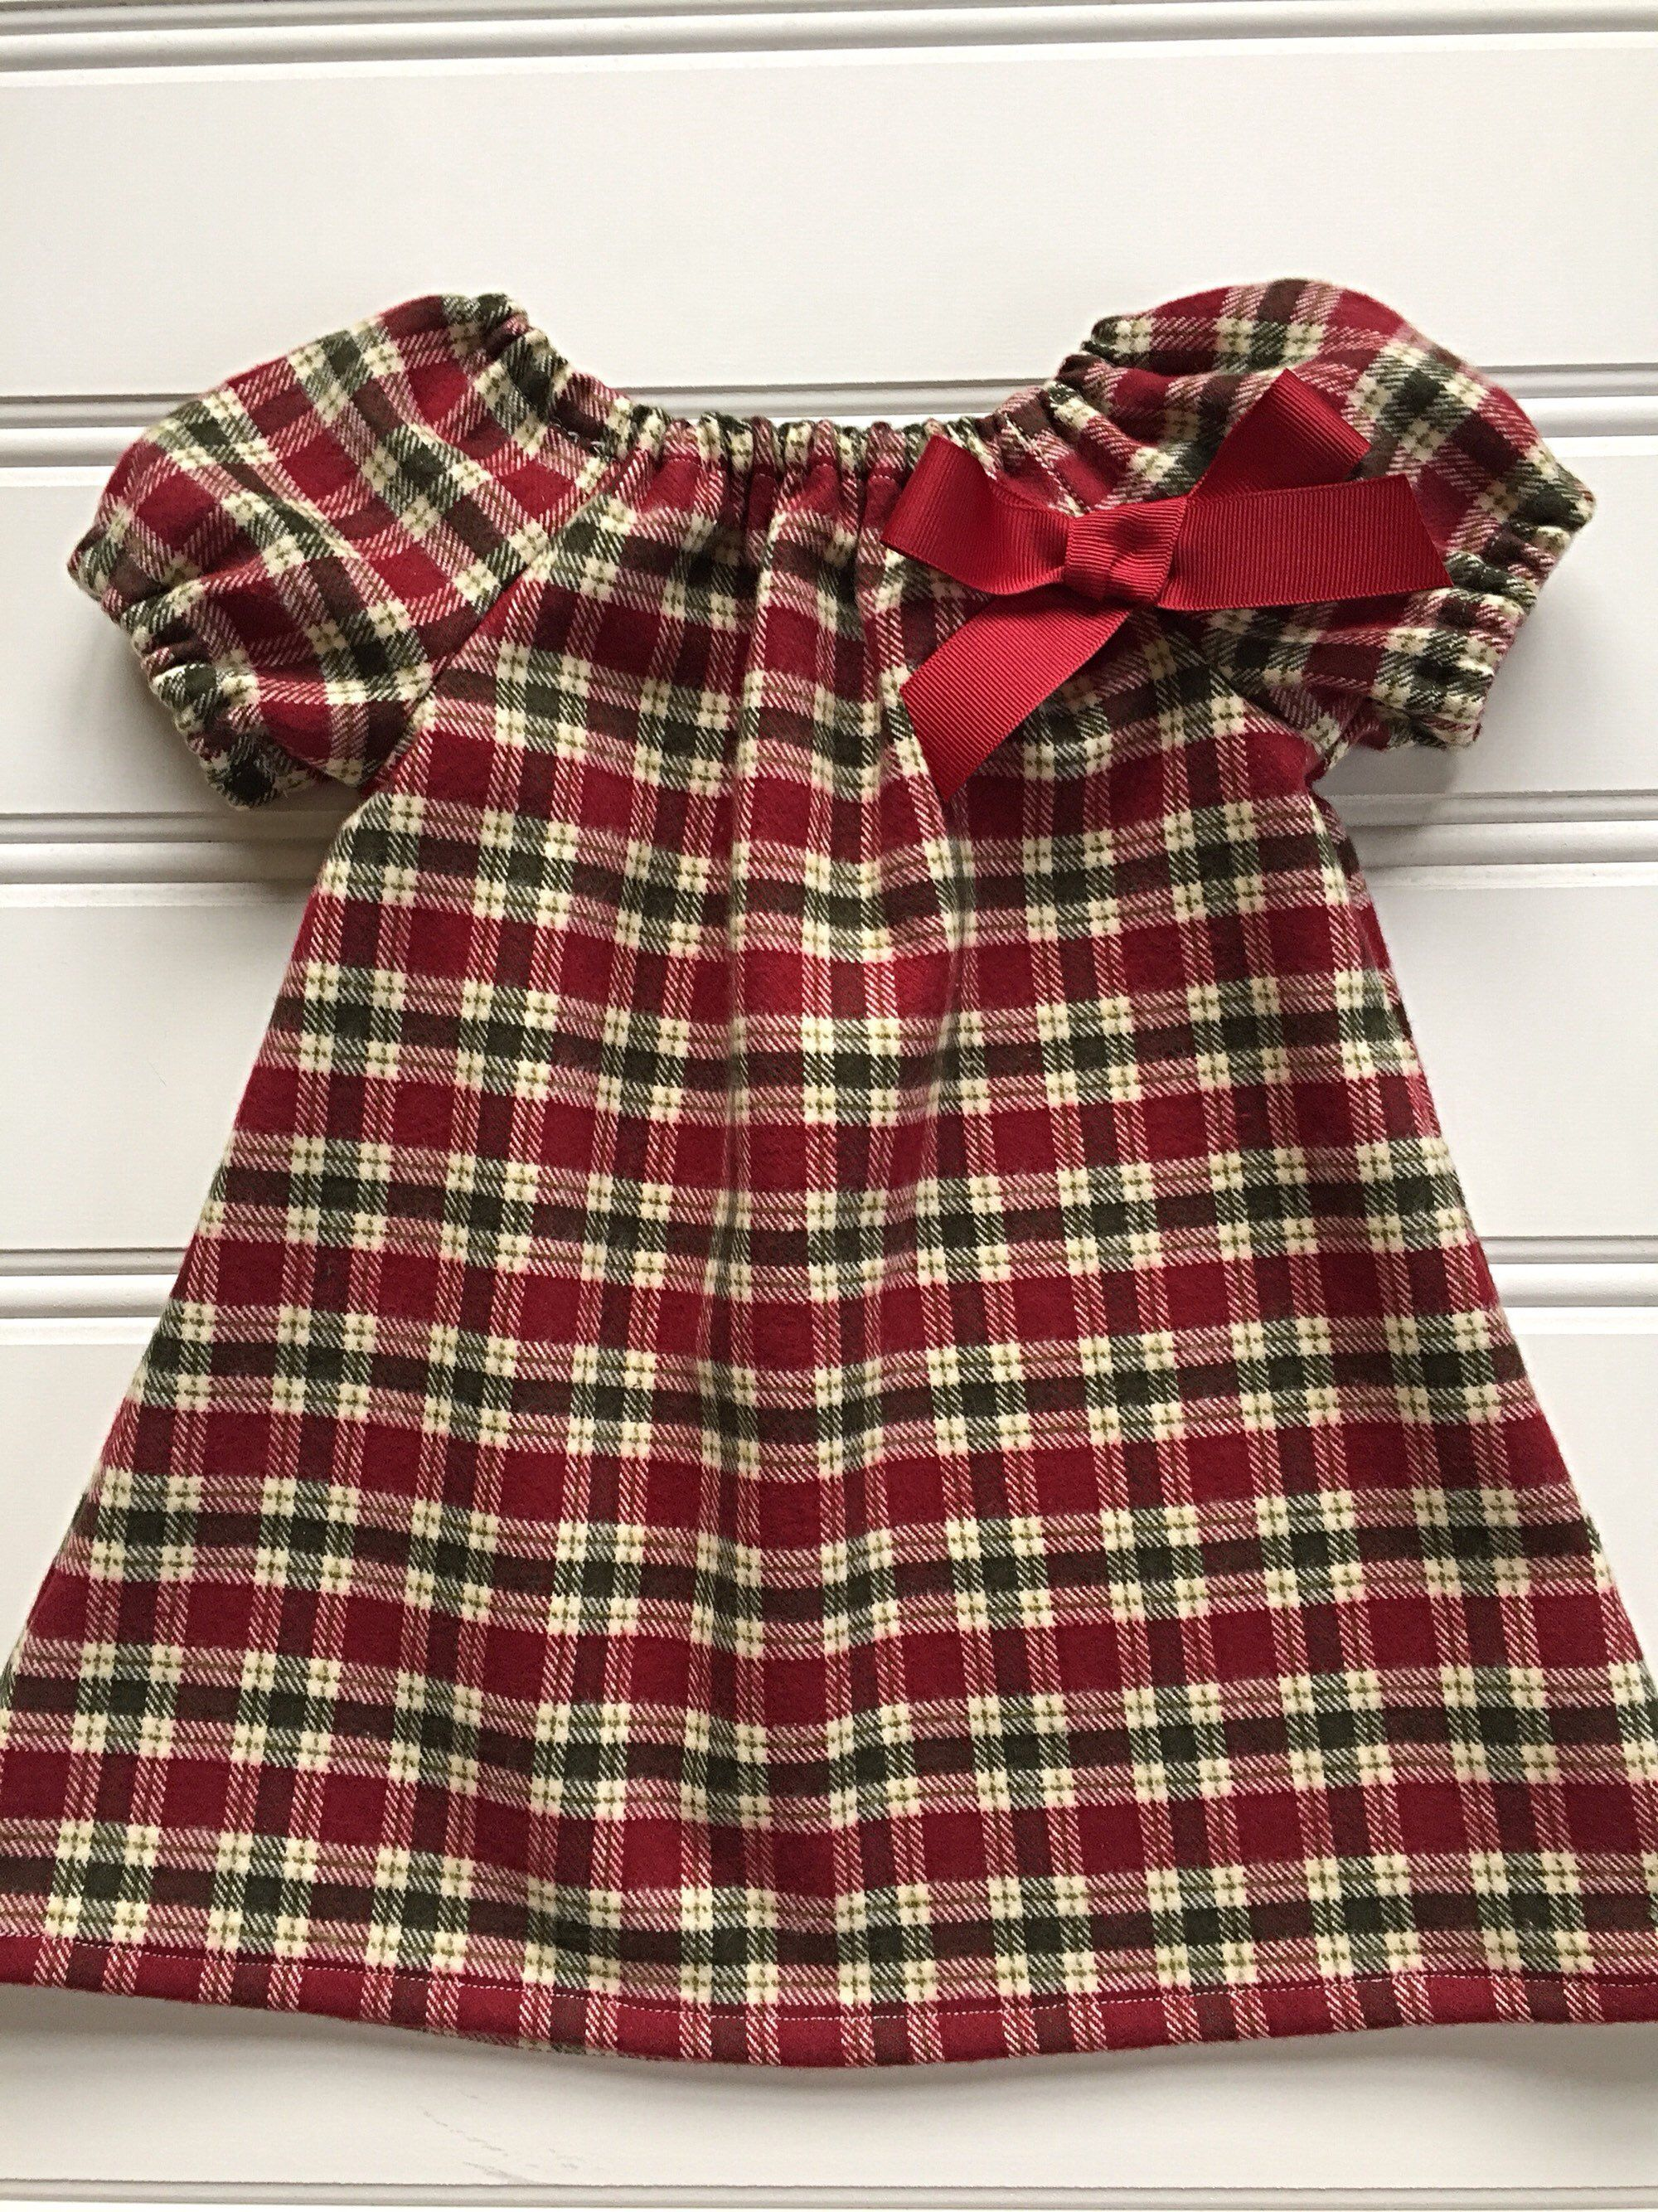 ad44479f14c4 Excited to share this item from my #etsy shop: Christmas Dress for Girl,  Toddler Christmas Dress, Baby Girl Christmas Dress, Plaid Dress, Flannel  Dress, ...